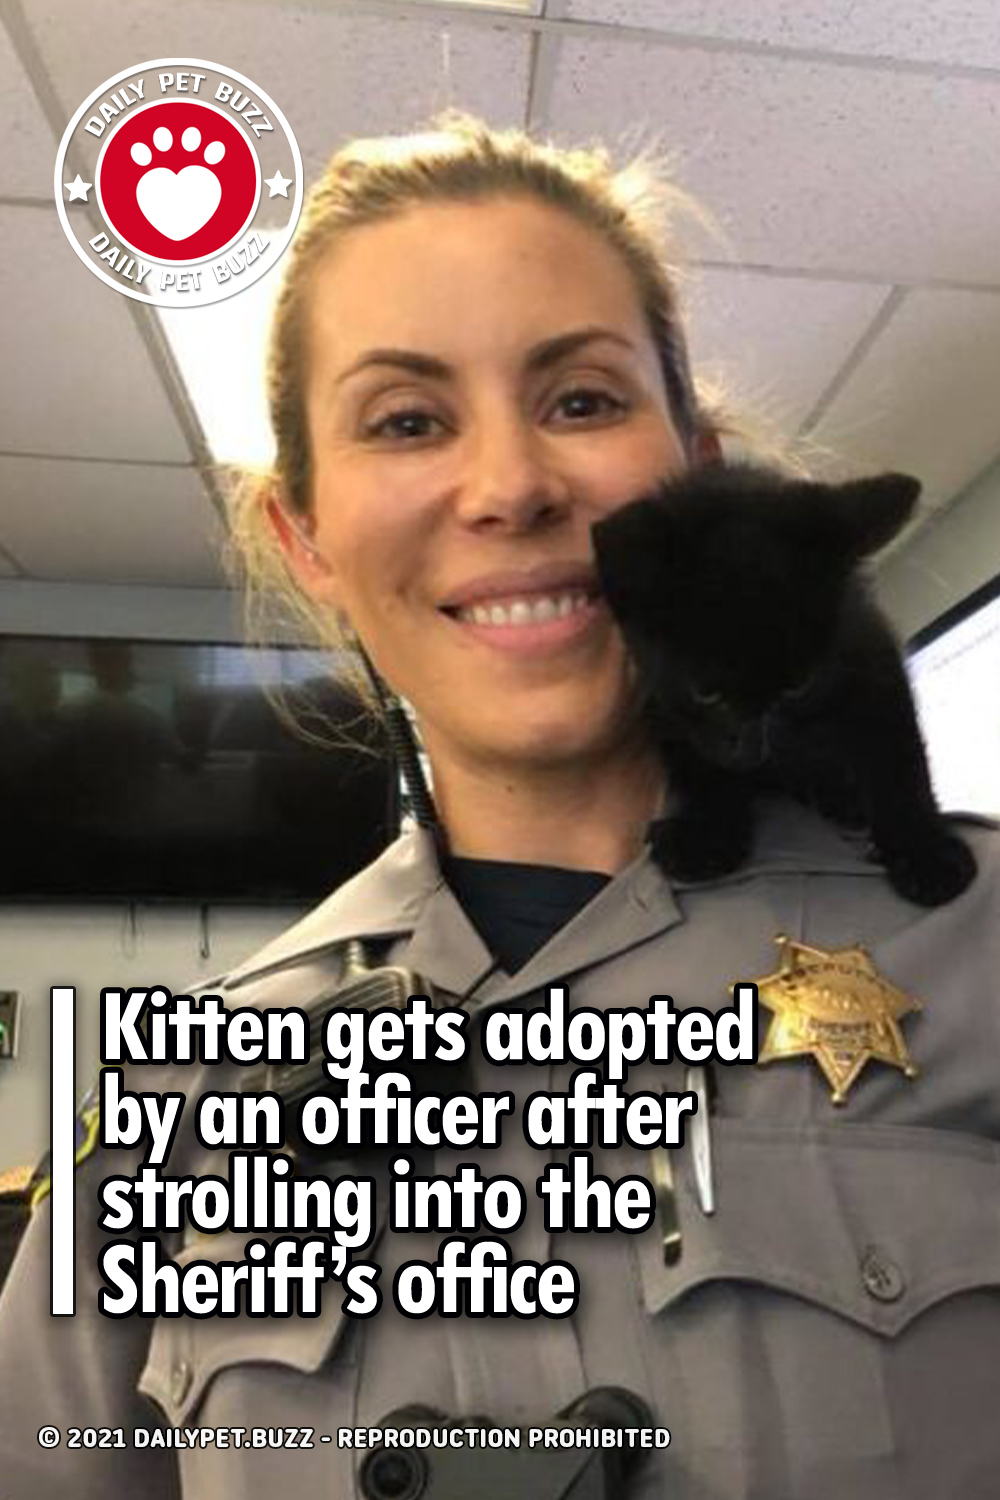 Kitten gets adopted by an officer after strolling into the Sheriff's office